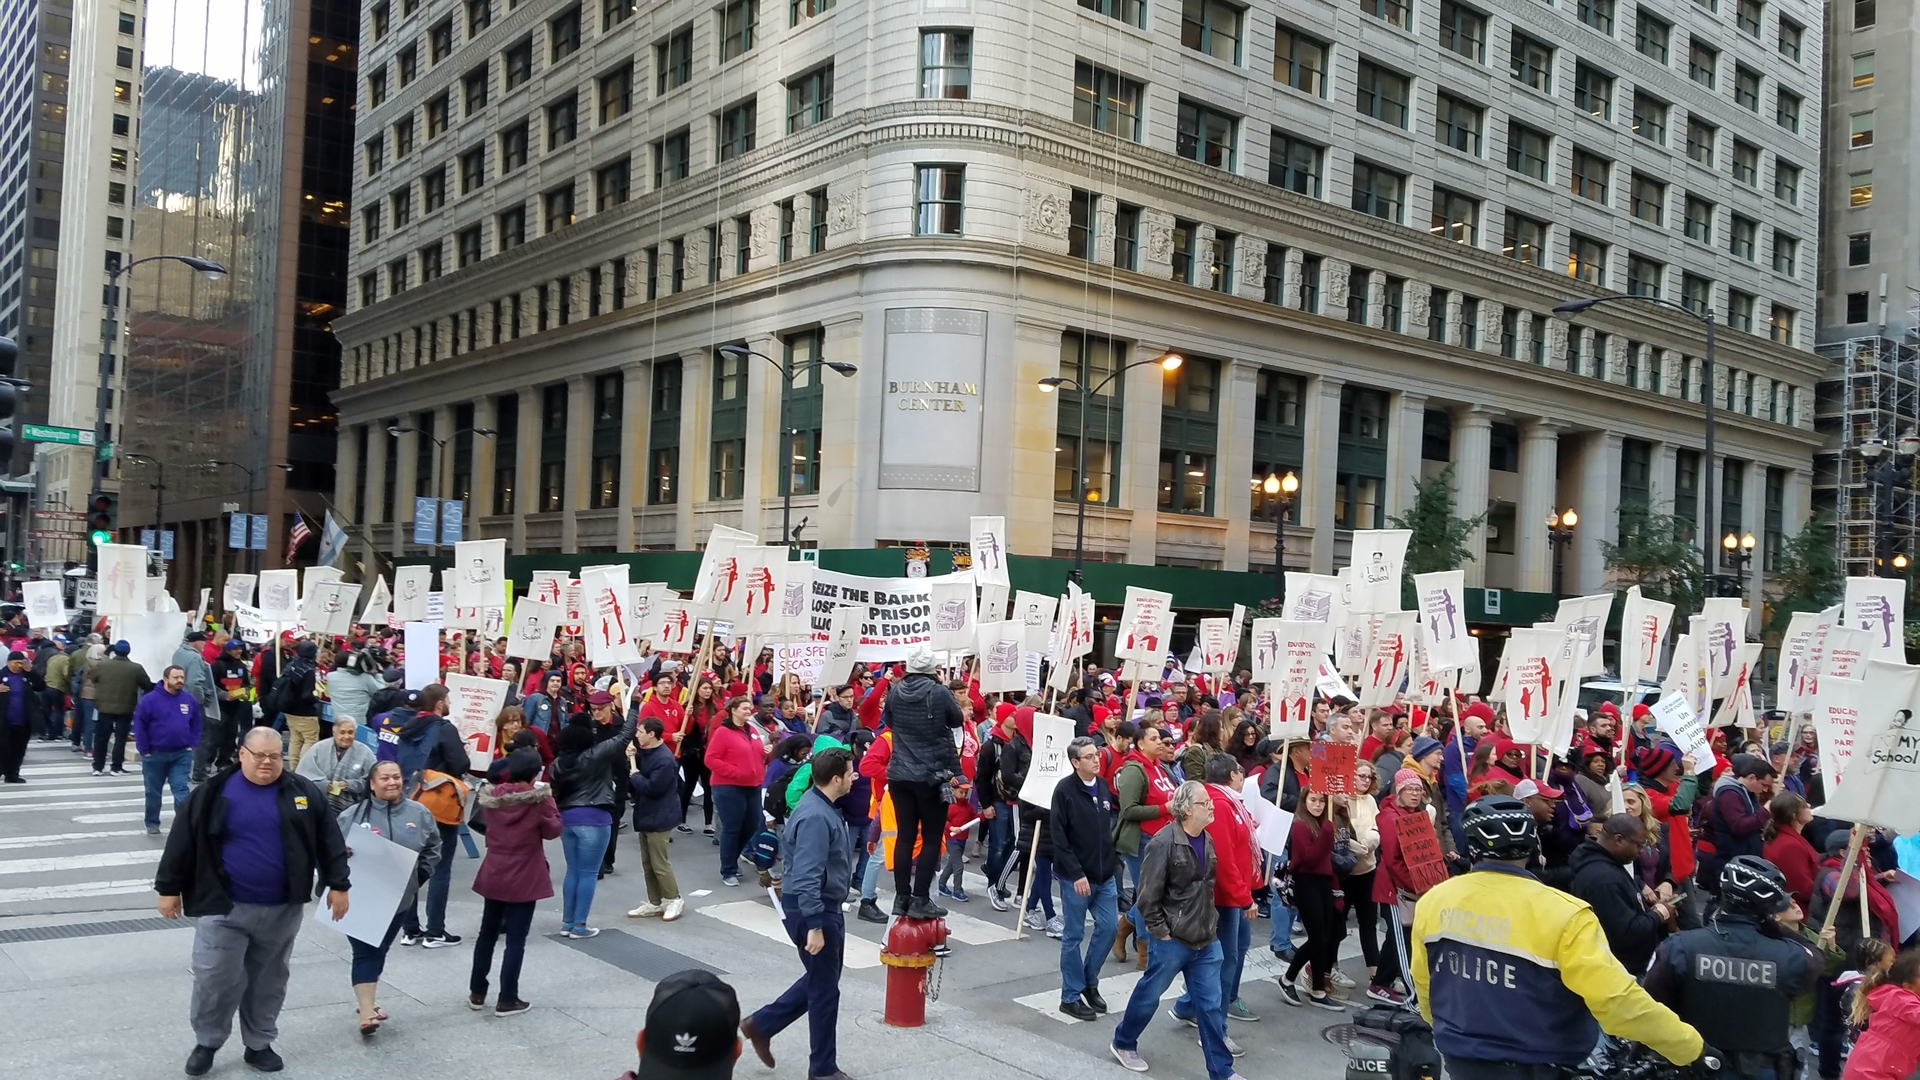 Over 30,000 teachers, support staff strike in Chicago seeking fairer education system